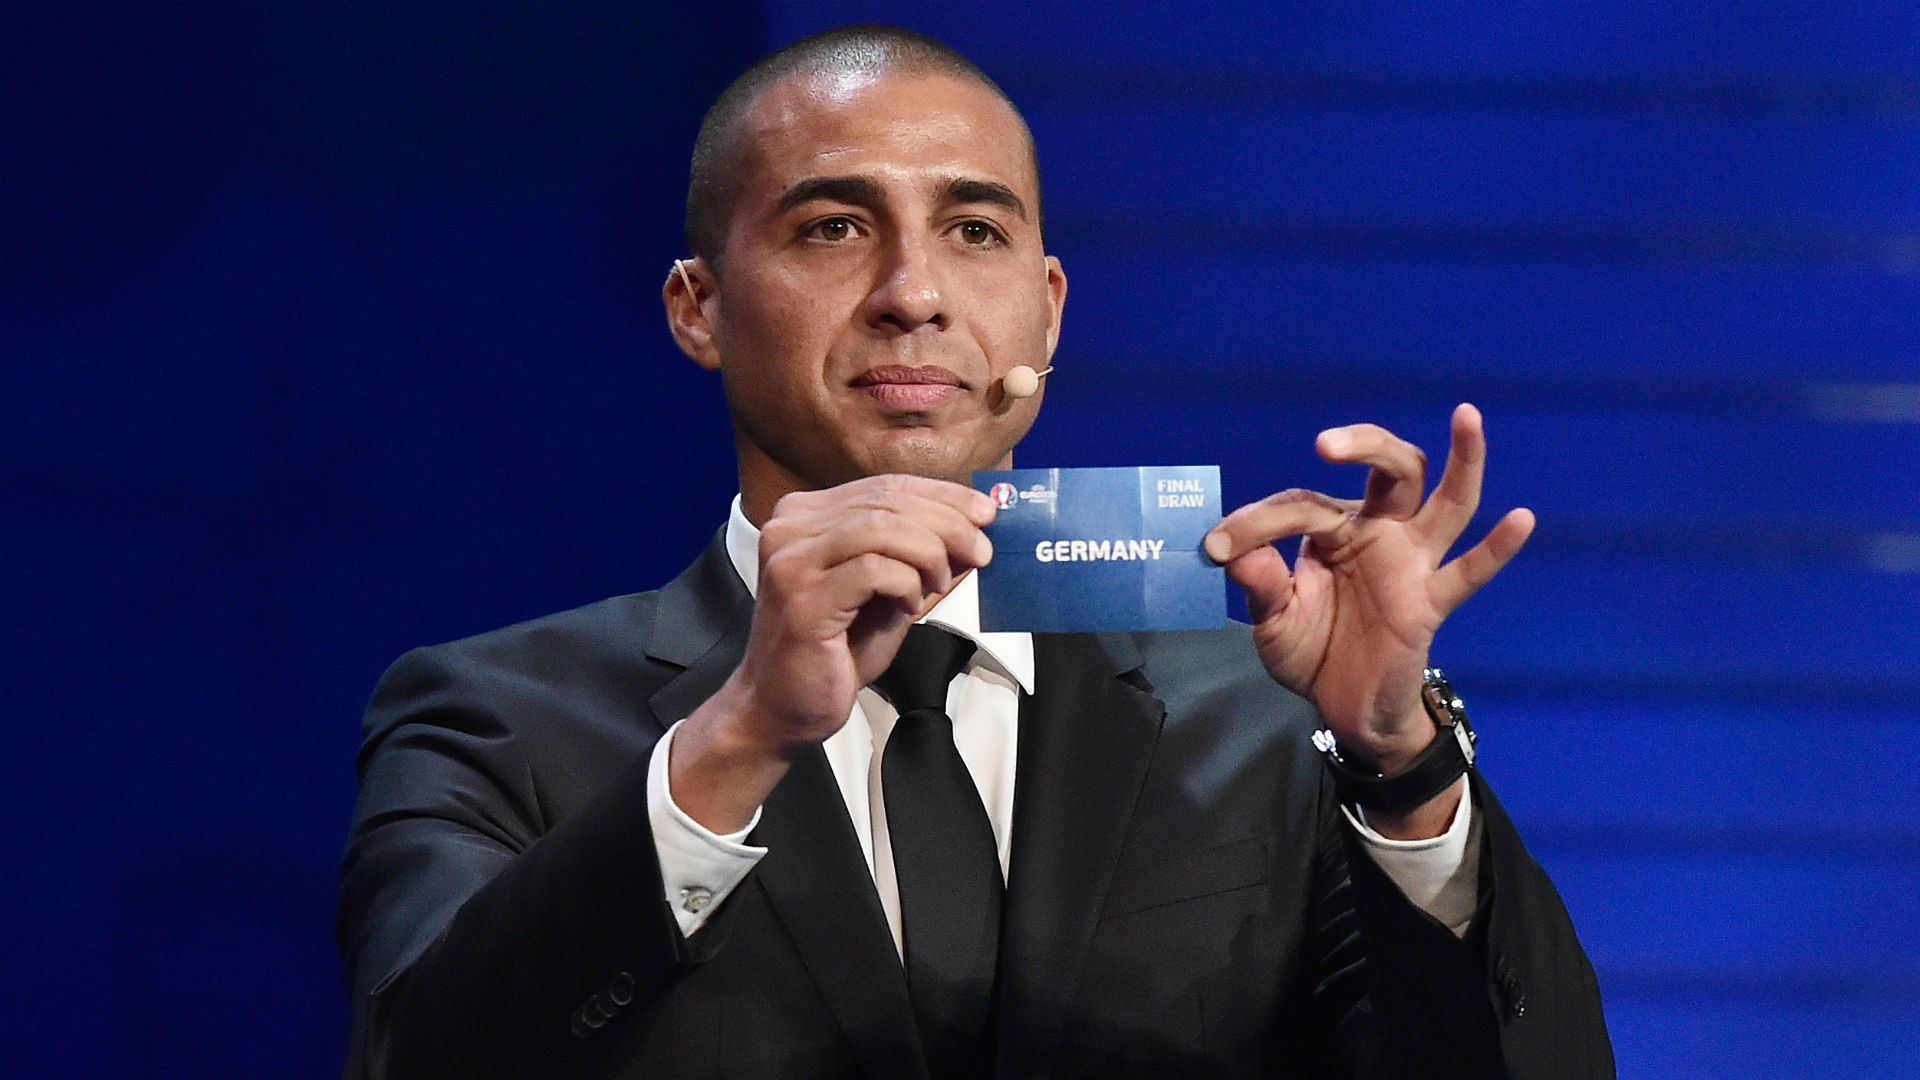 David Trezeguet Euro 2016 draw